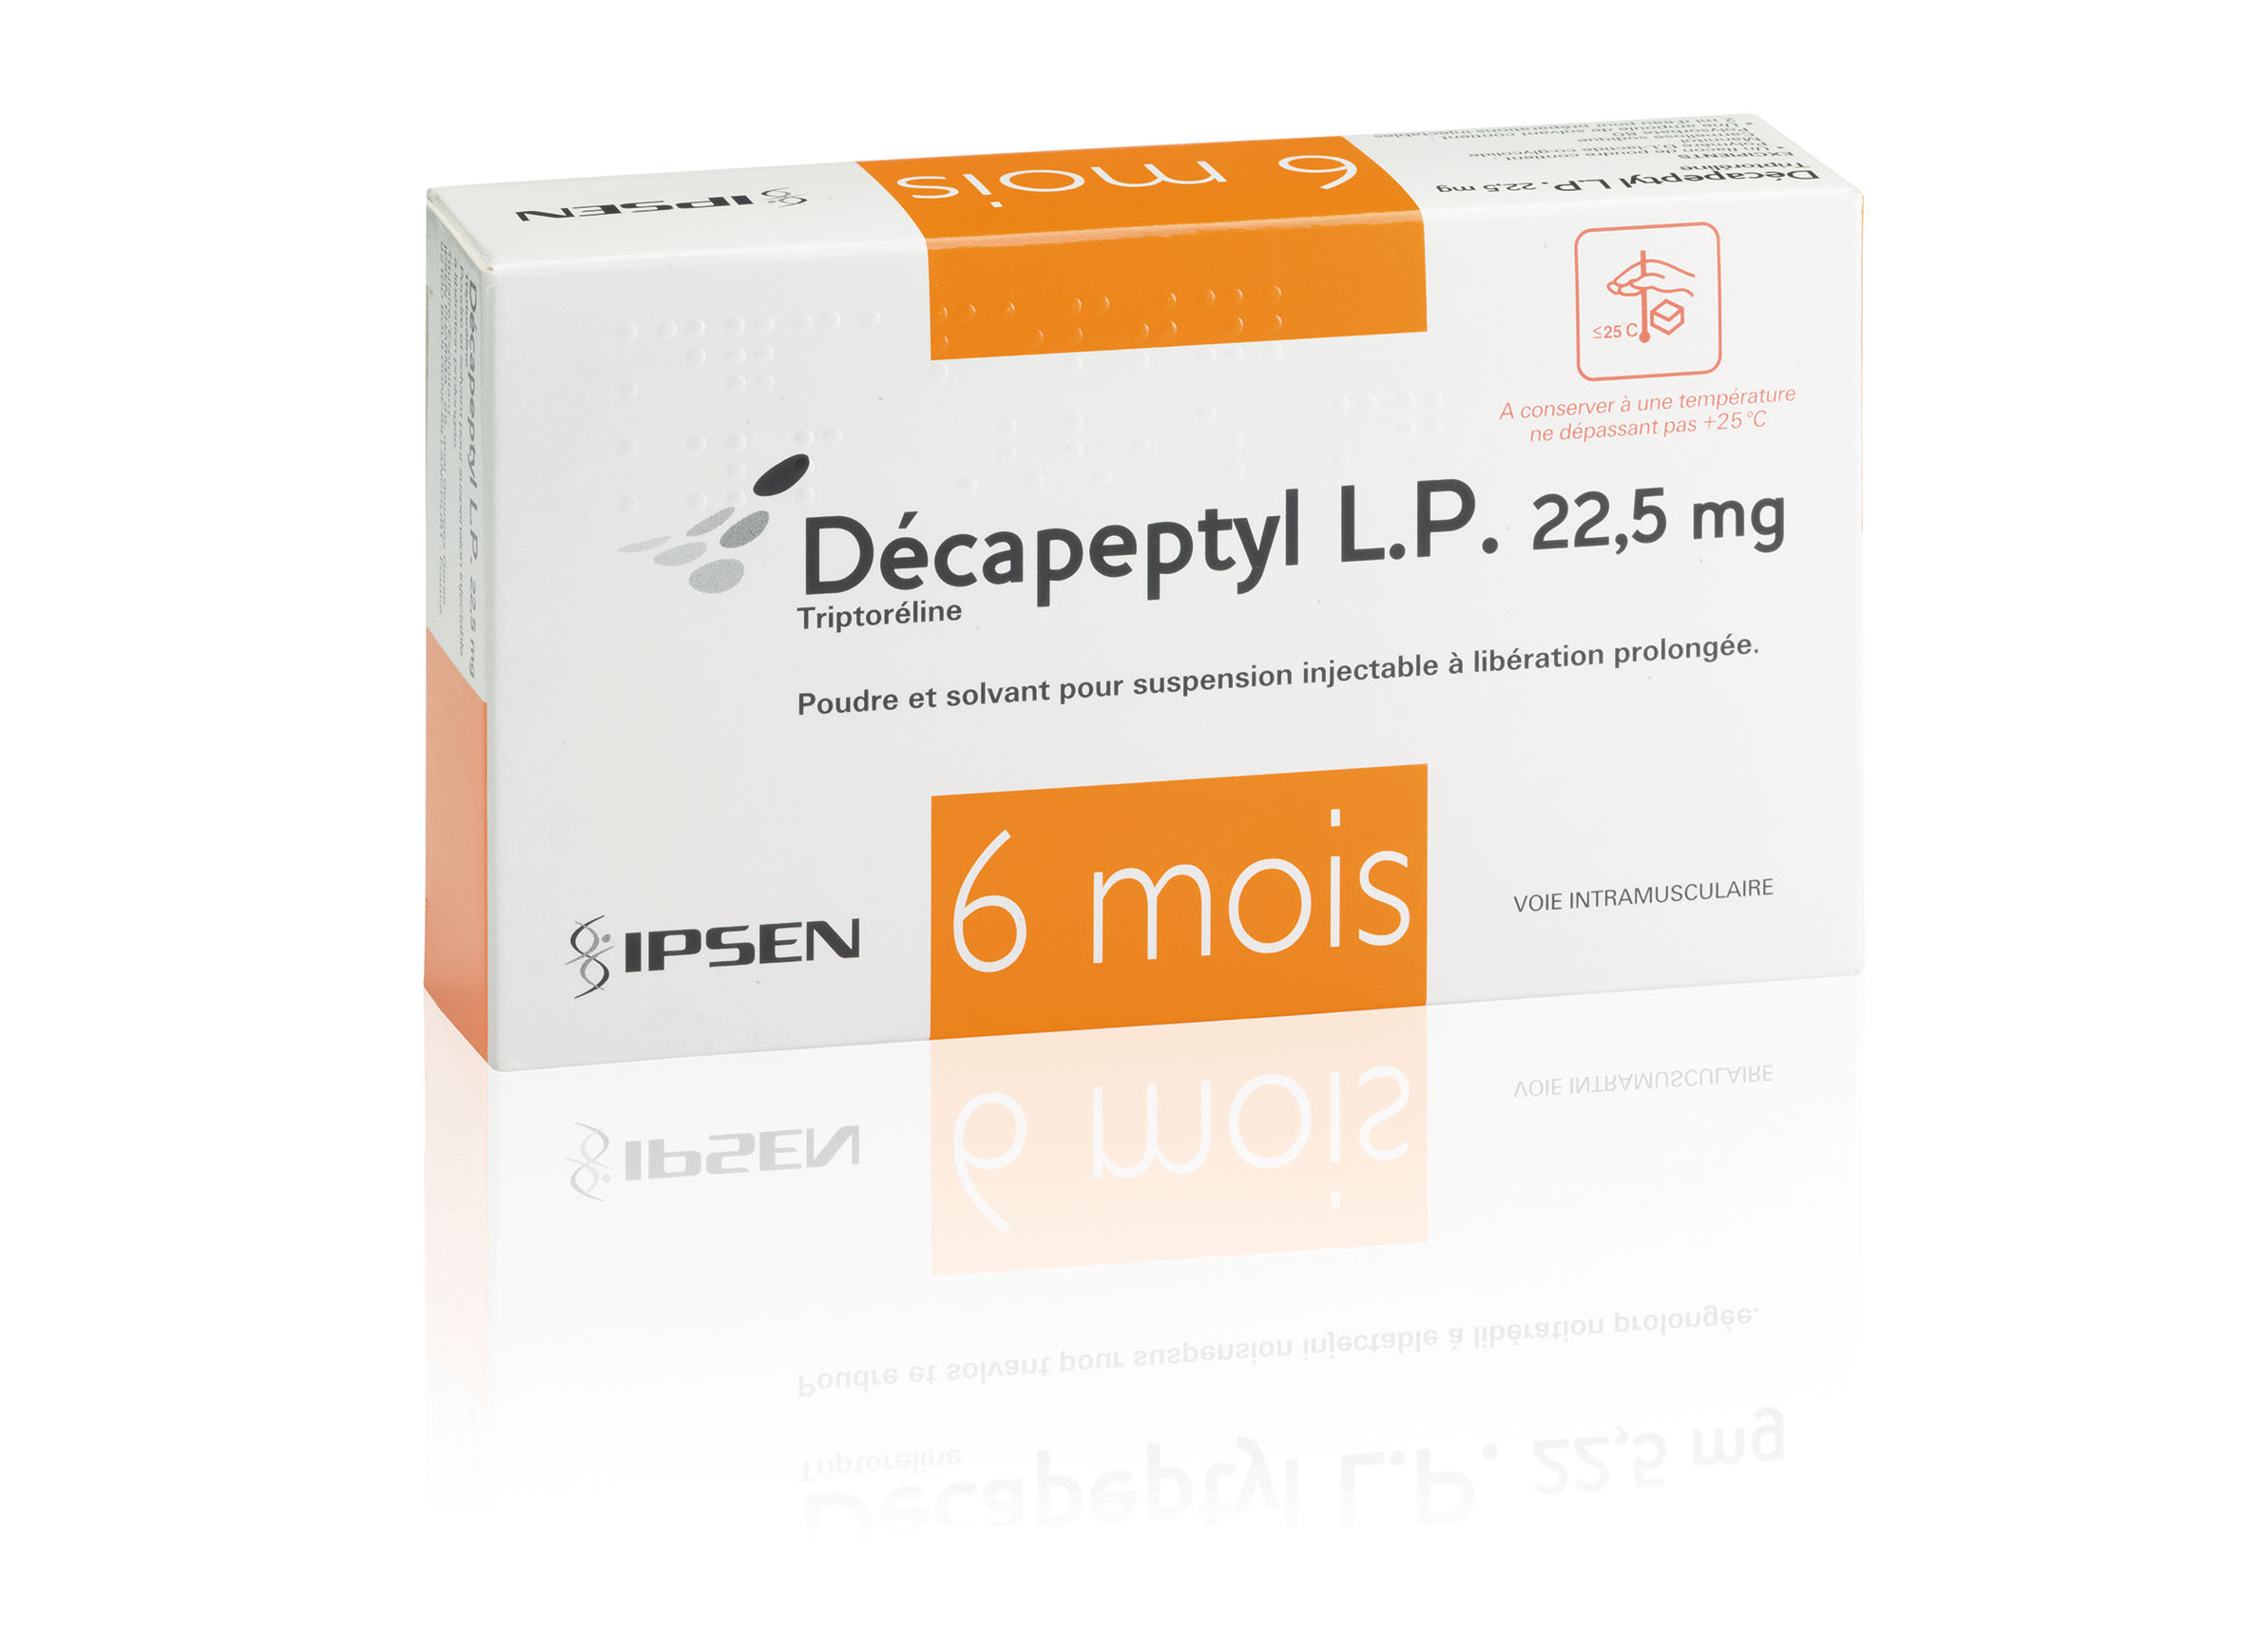 Image DECAPEPTYL LP 22,5 mg Pdr & solv susp inj LP Fl+Amp/2ml+Ser+Aig